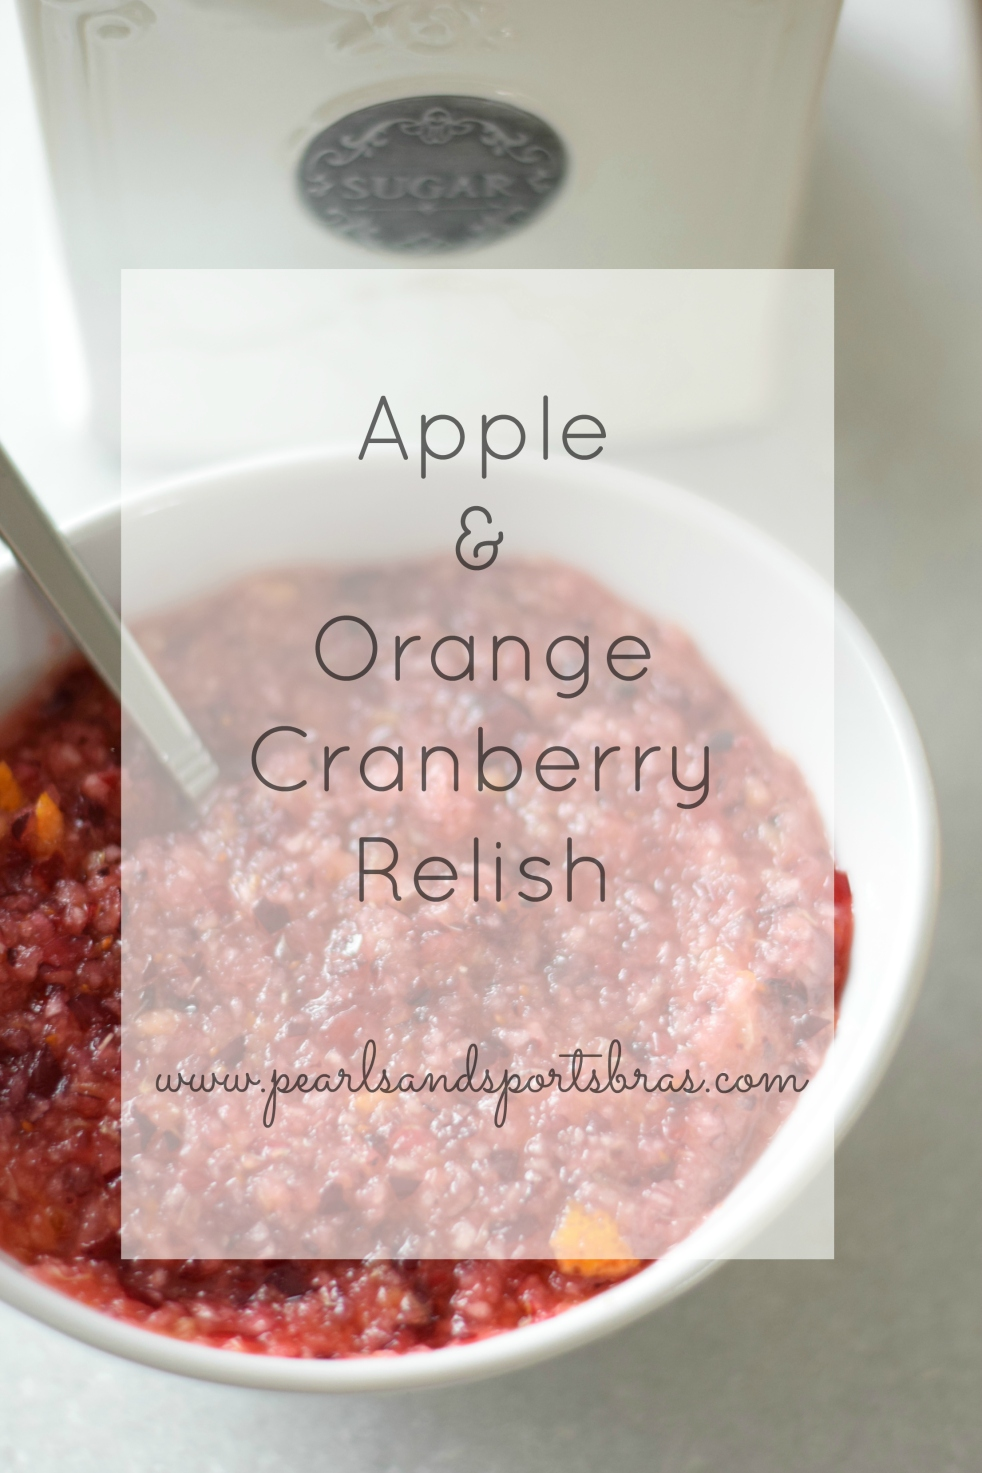 Apple & Orange Cranberry Relish |www,pearlsandsportsbras.com|